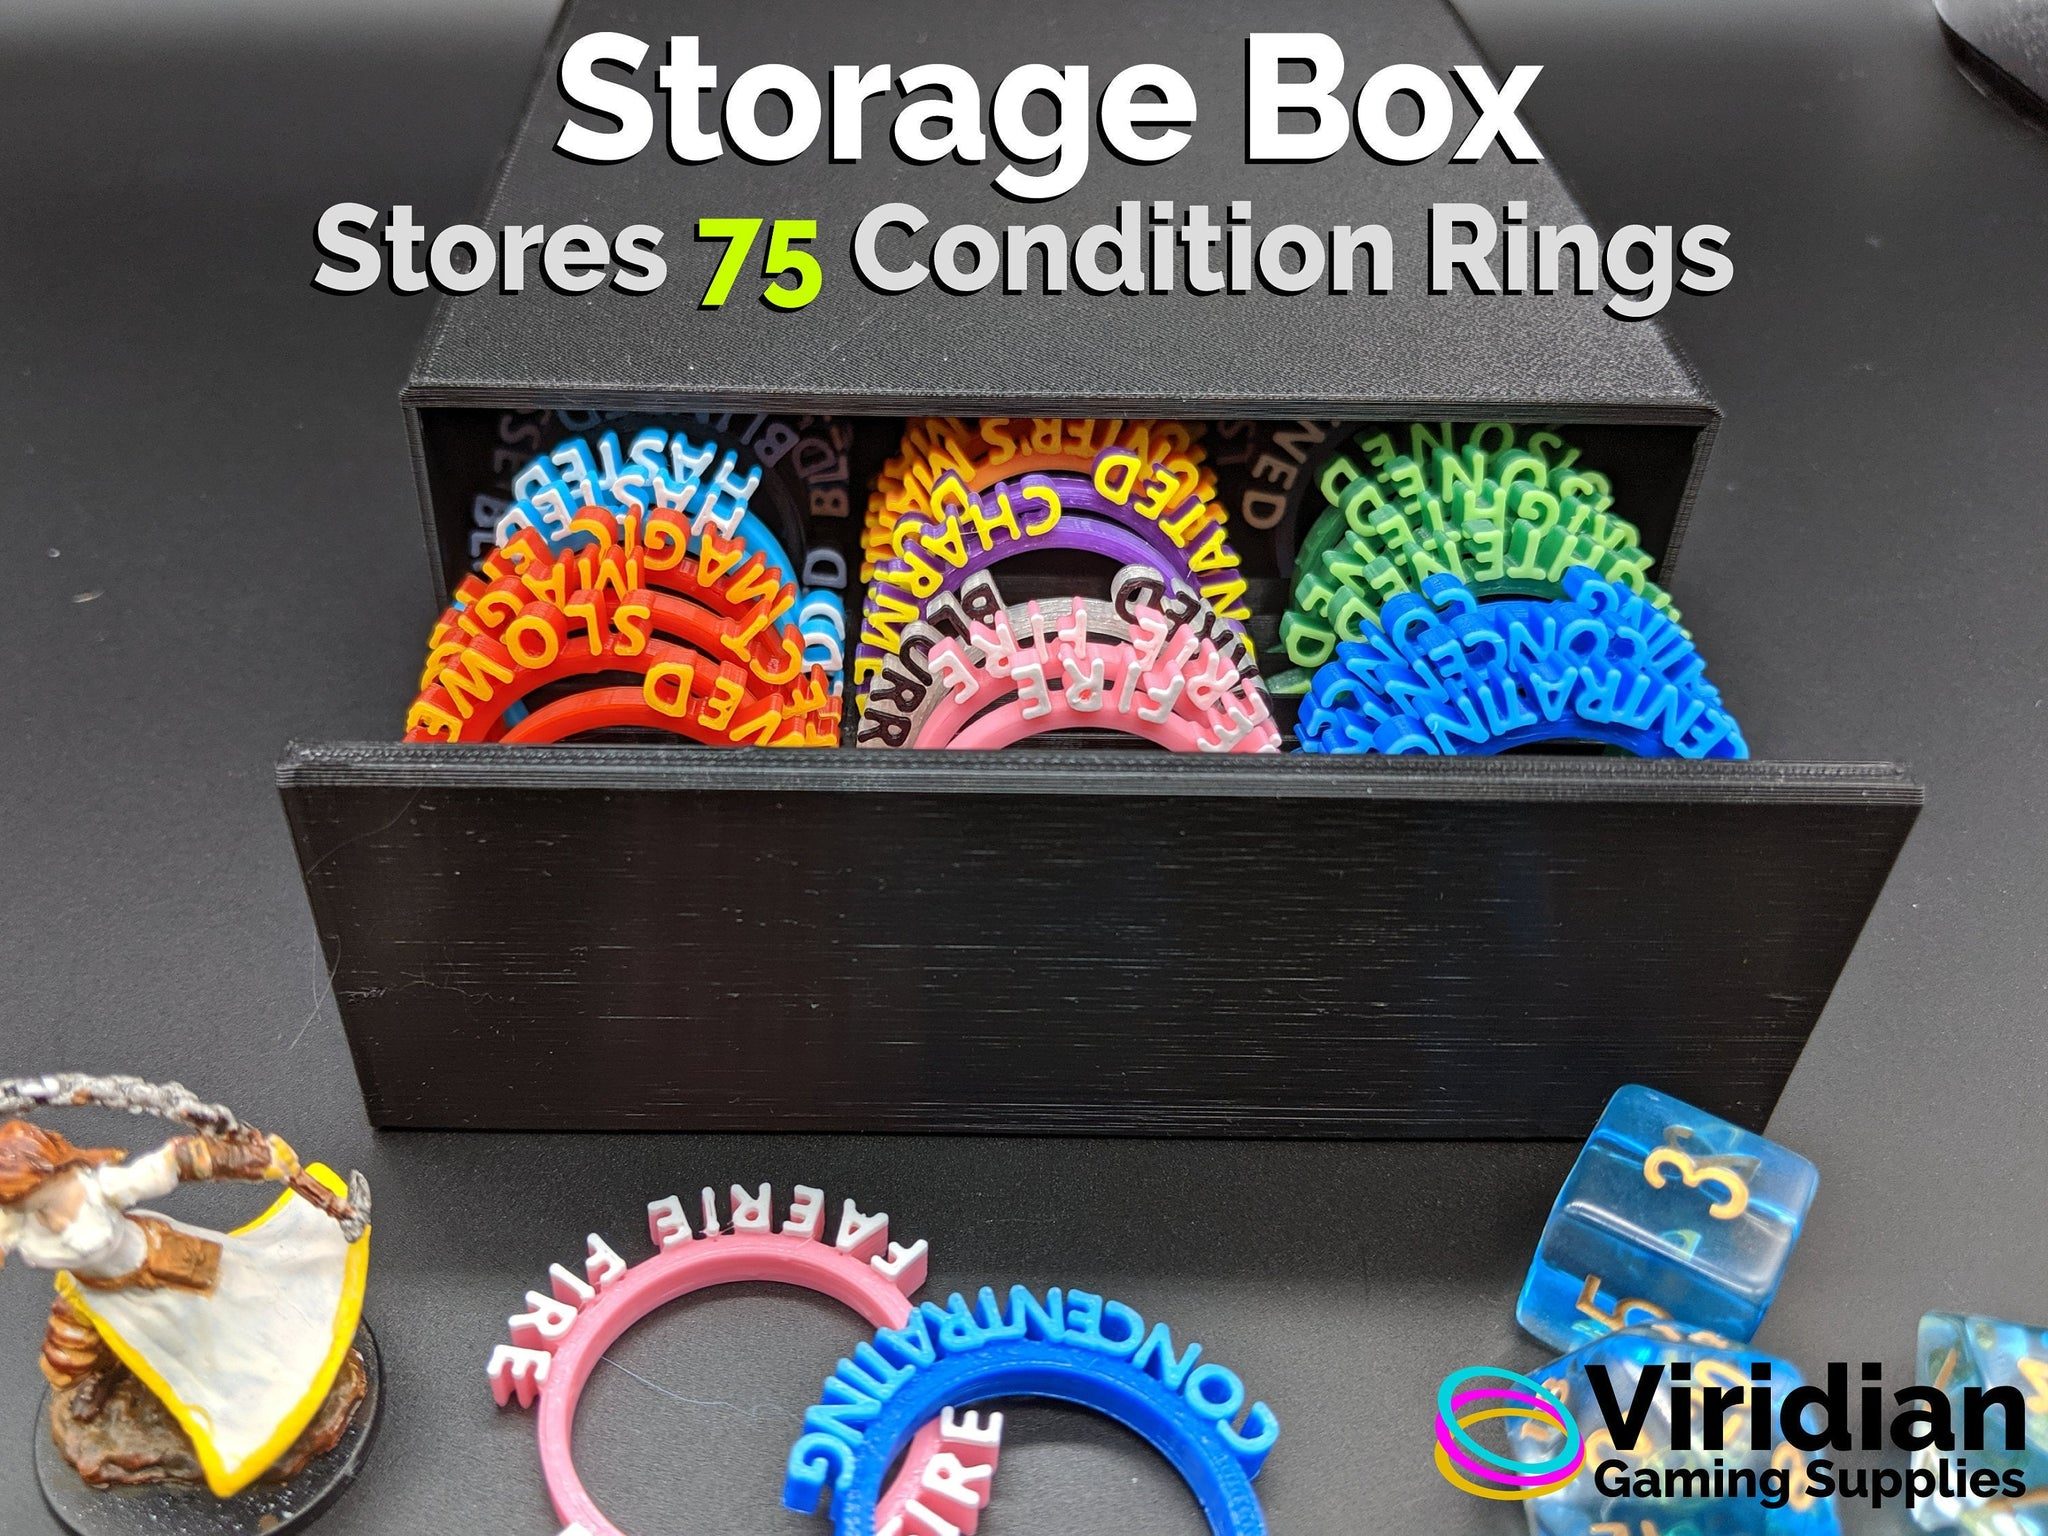 Storage Box | Condition Ring Storage